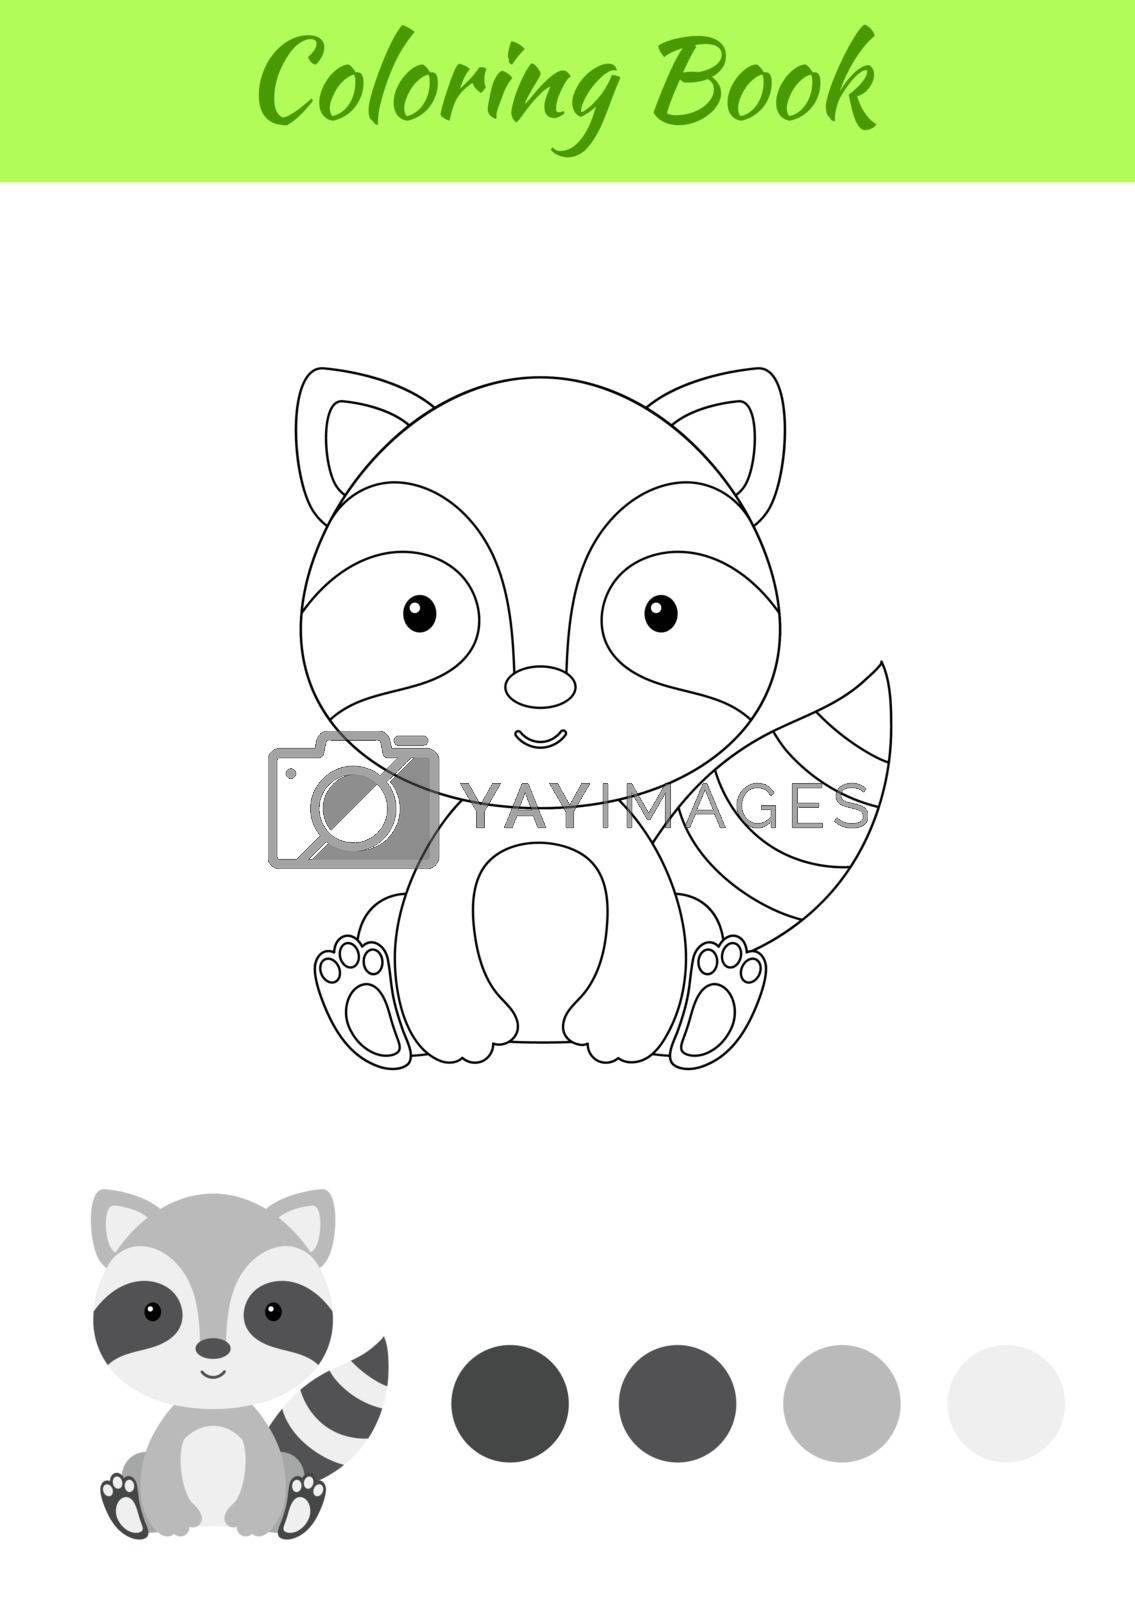 Coloring page little sitting baby raccoon. Coloring book for kid by Melnyk